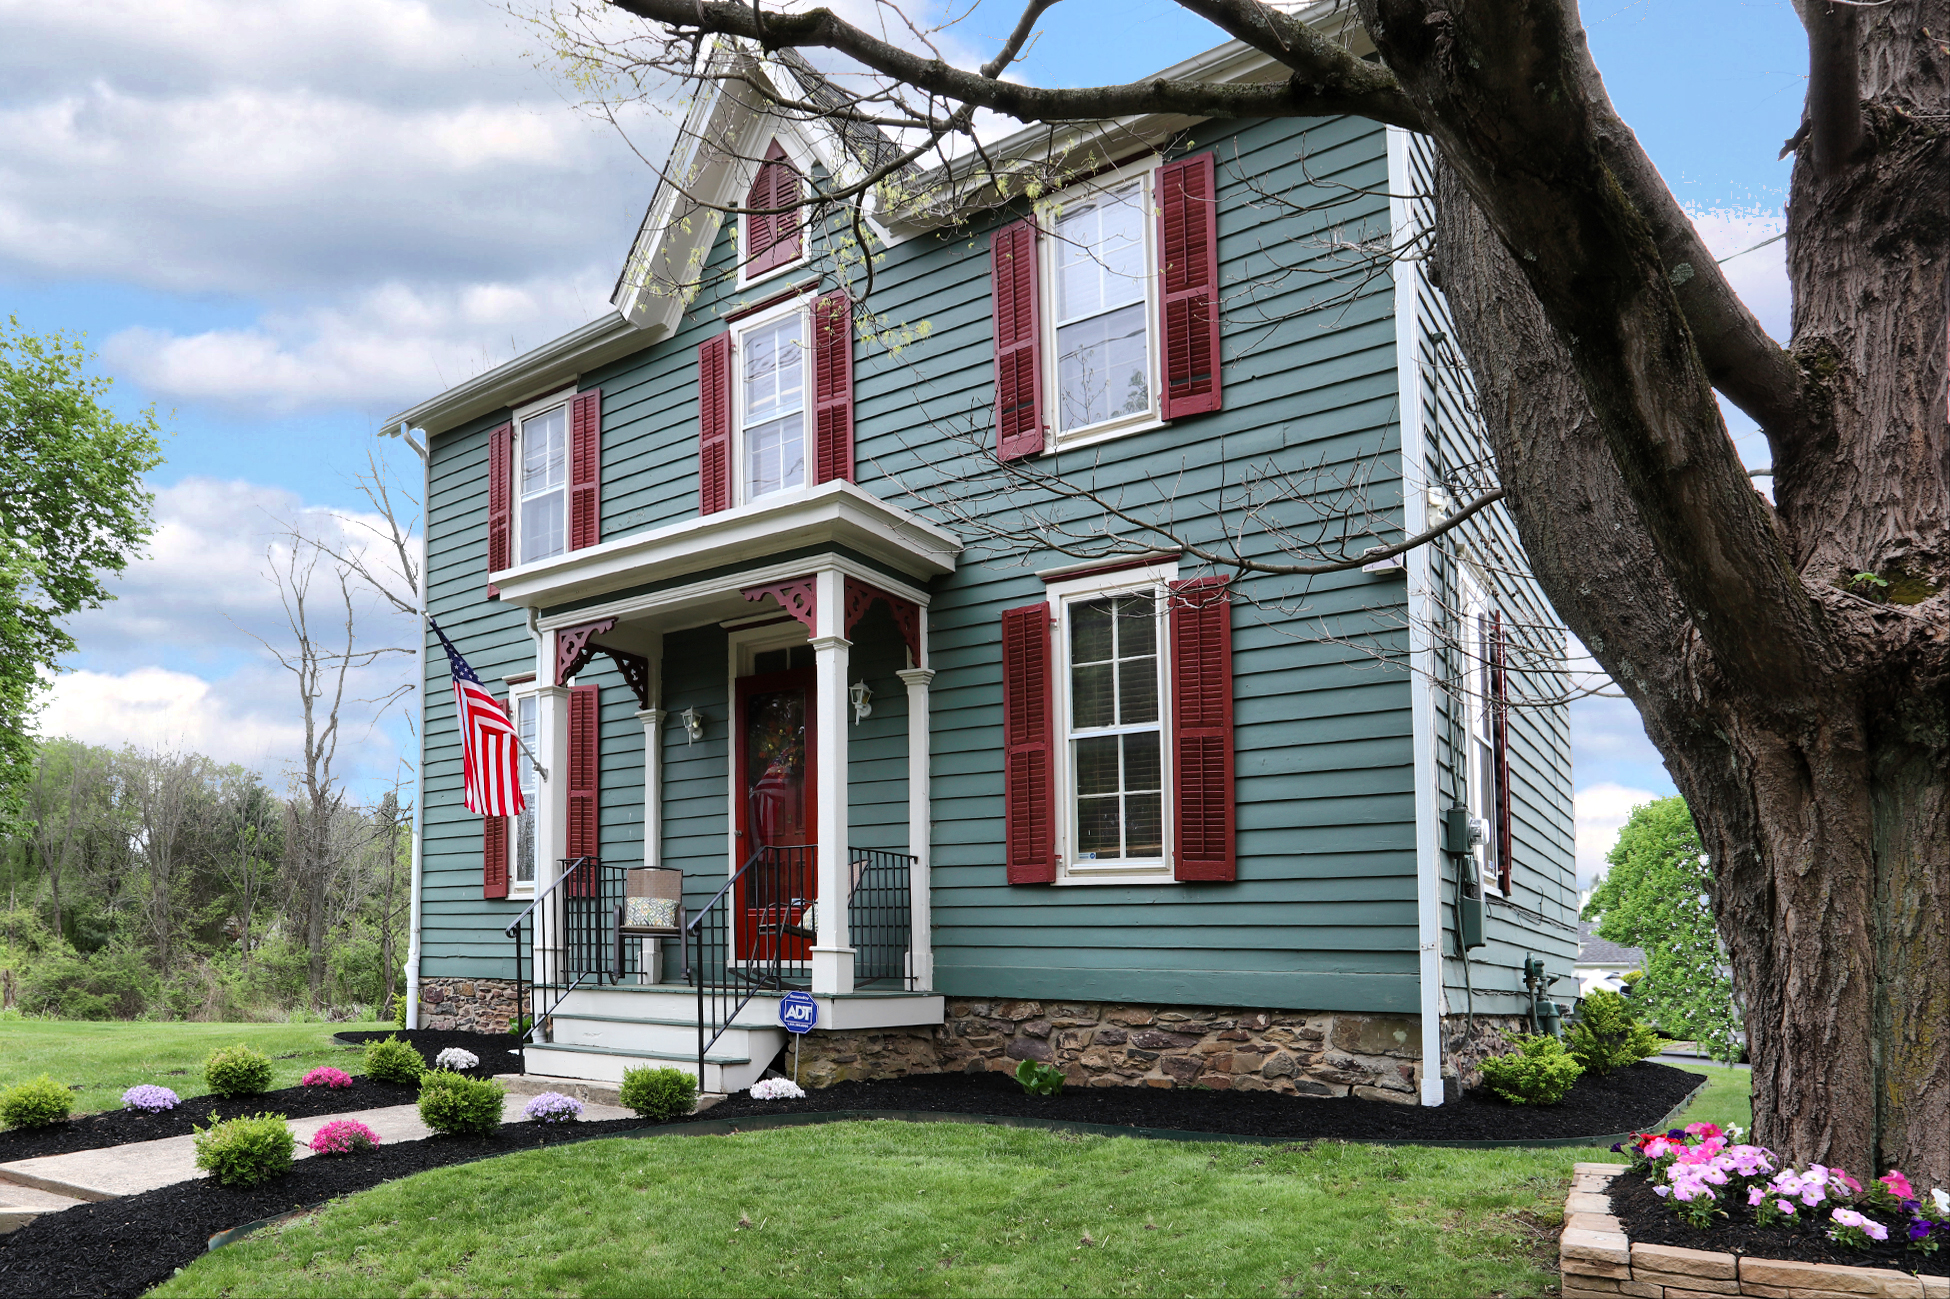 Additional photo for property listing at The Easy Pace Of Country Living - East Amwell Township 5 John Ringo Road Ringoes, Нью-Джерси 08551 Соединенные Штаты